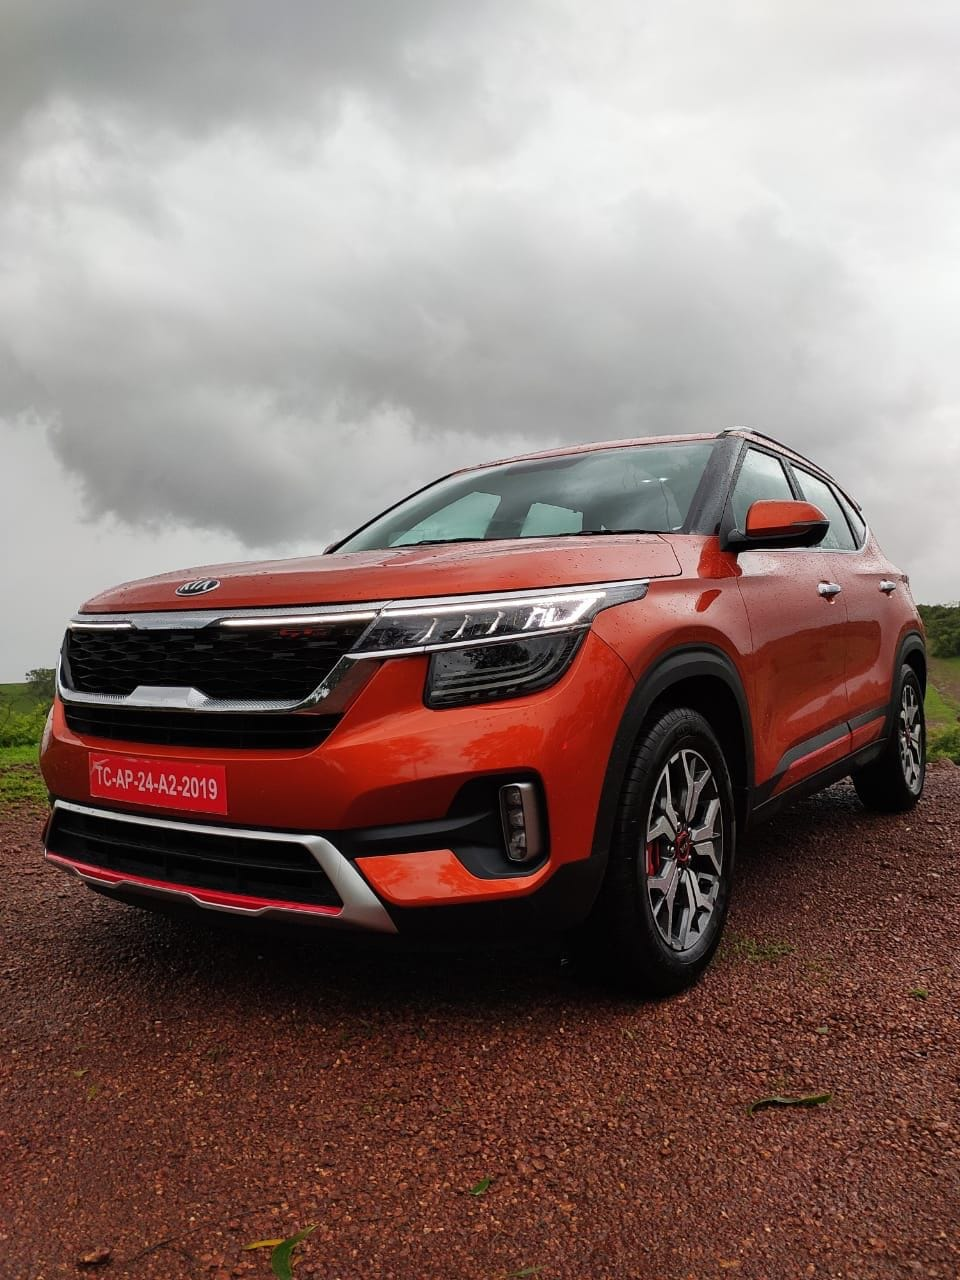 Kia Seltos has familial tiger-nose grill, the top of which gets LED DRLs stretching outwards to the end of the headlamps. Kia Seltos' headlamps are full-LED units, just like the vertically stacked fog lamps on the bumper below.